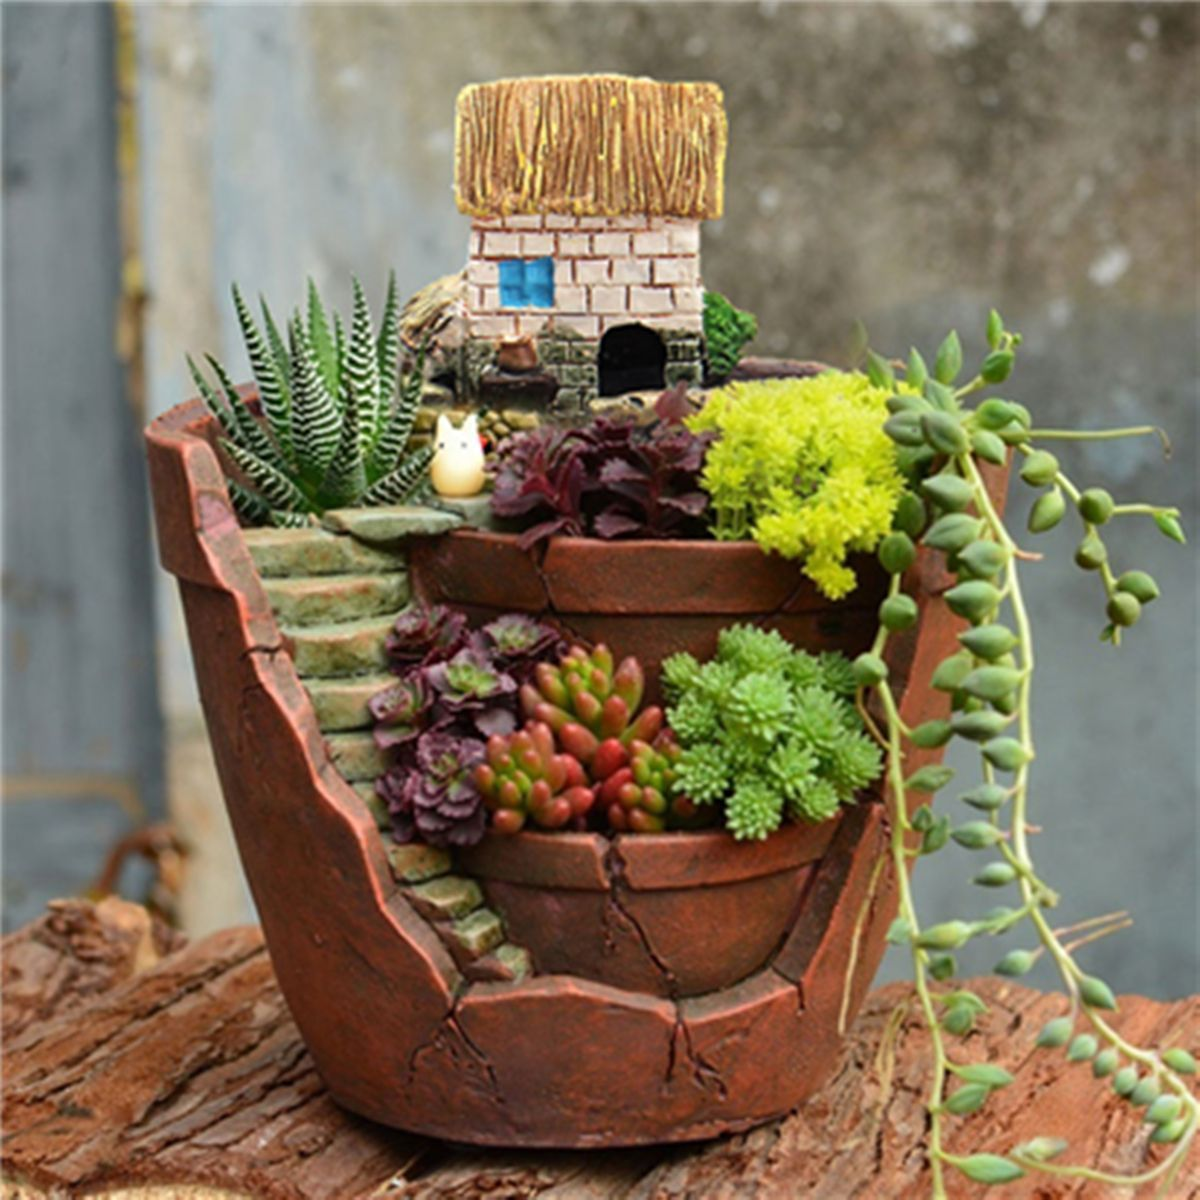 Succulent Herb Flower Basket Planter Plant Sky Bonsai Green Plants Resin Pot Garden House Home Dec Succulent Landscape Design Succulent Landscaping Flower Pots